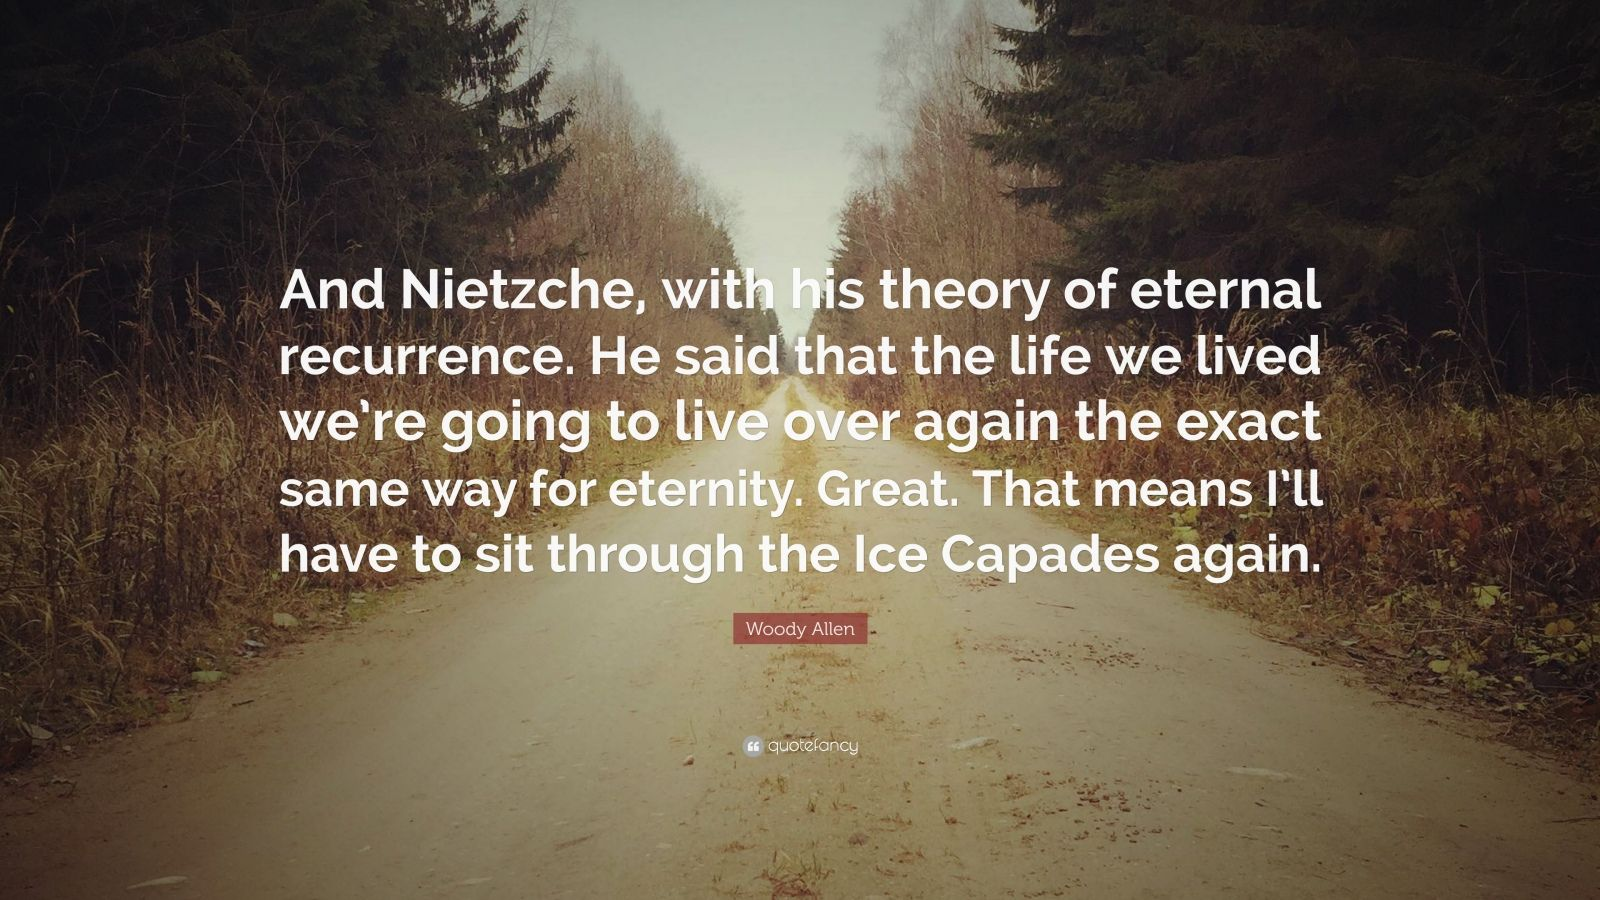 "Woody Allen Quote: ""And Nietzche, with his theory of eternal recurrence. He said that the life we lived we're going to live over again the exact same way for eternity. Great. That means I'll have to sit through the Ice Capades again."""